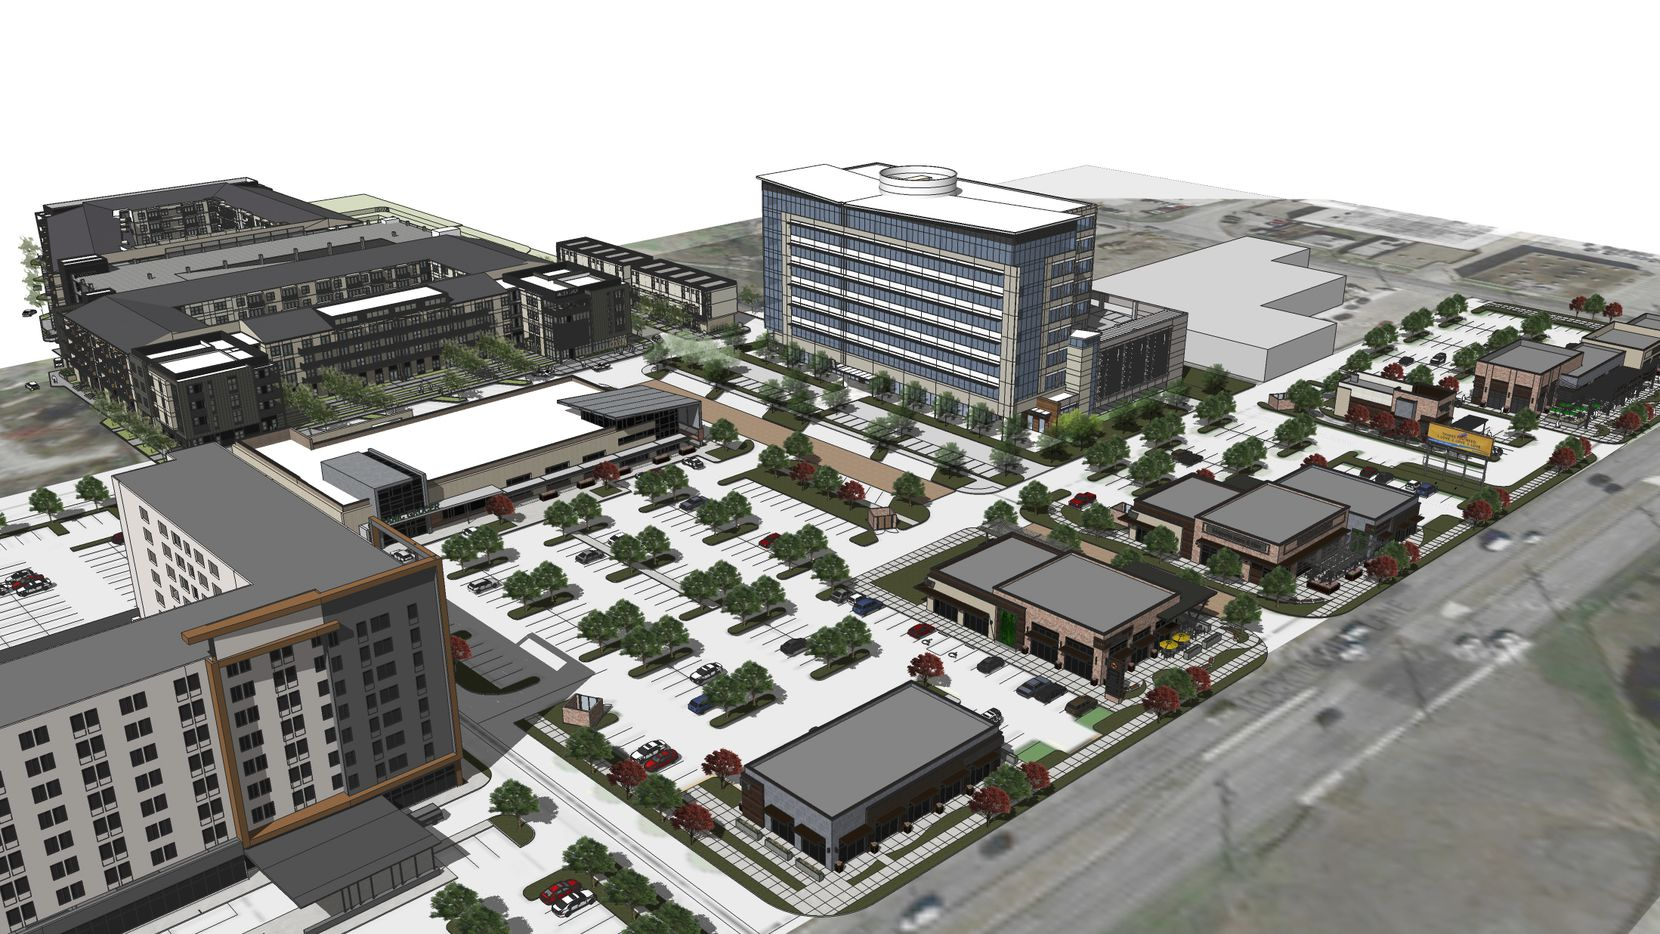 The 37-acre West Love mixed-use project includes two hotels, apartments, office and retail space.